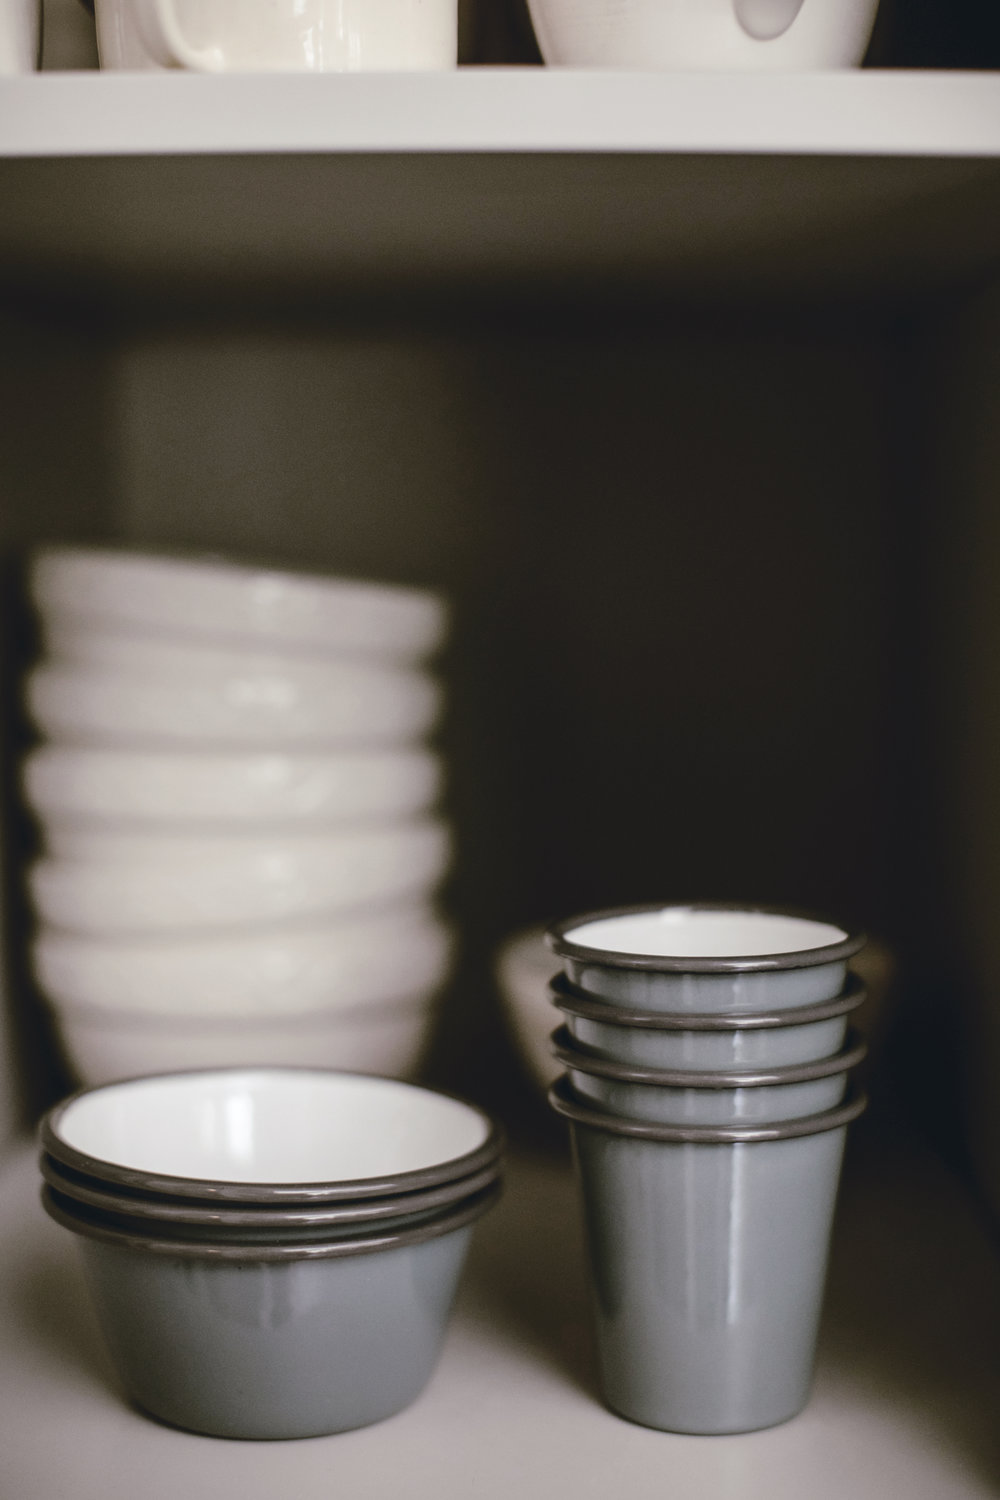 Stacks of dishes in open cabinet for kitchen tour and Falcon enamelware in pigeon grey / heirloomed